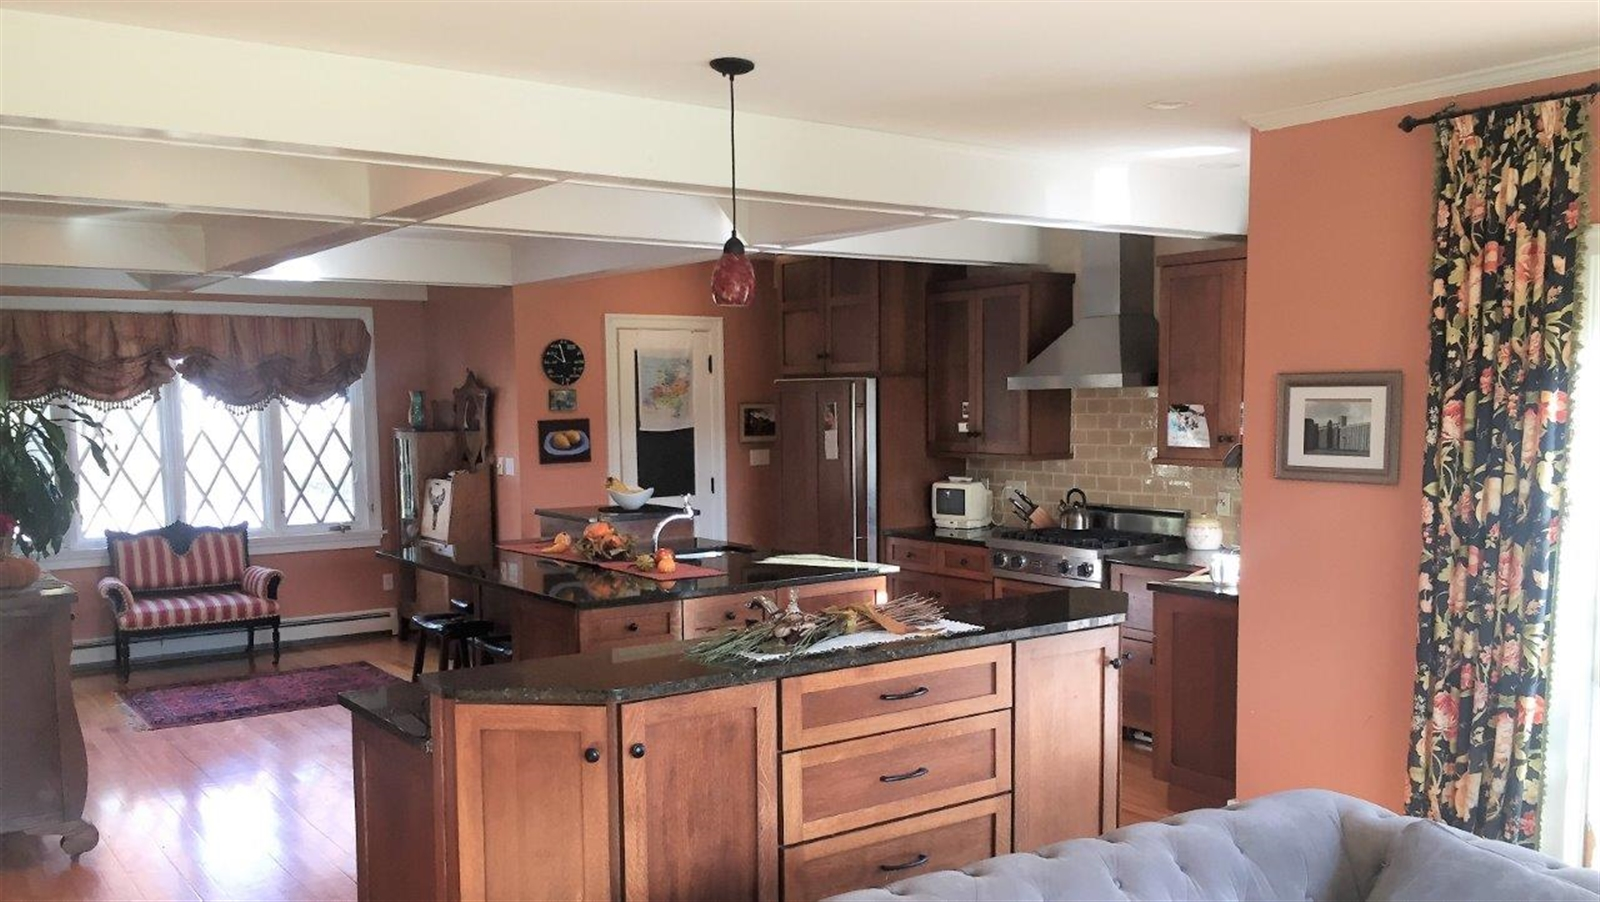 The renovated kitchen features custom quarter-sawn oak Shaker-style cabinets, granite countertops, a Viking stove and, in addition to the full-size refrigerator, two Sub-Zero paneled refrigerator drawers next to the stove. The floor is crafted from birch heartwood.